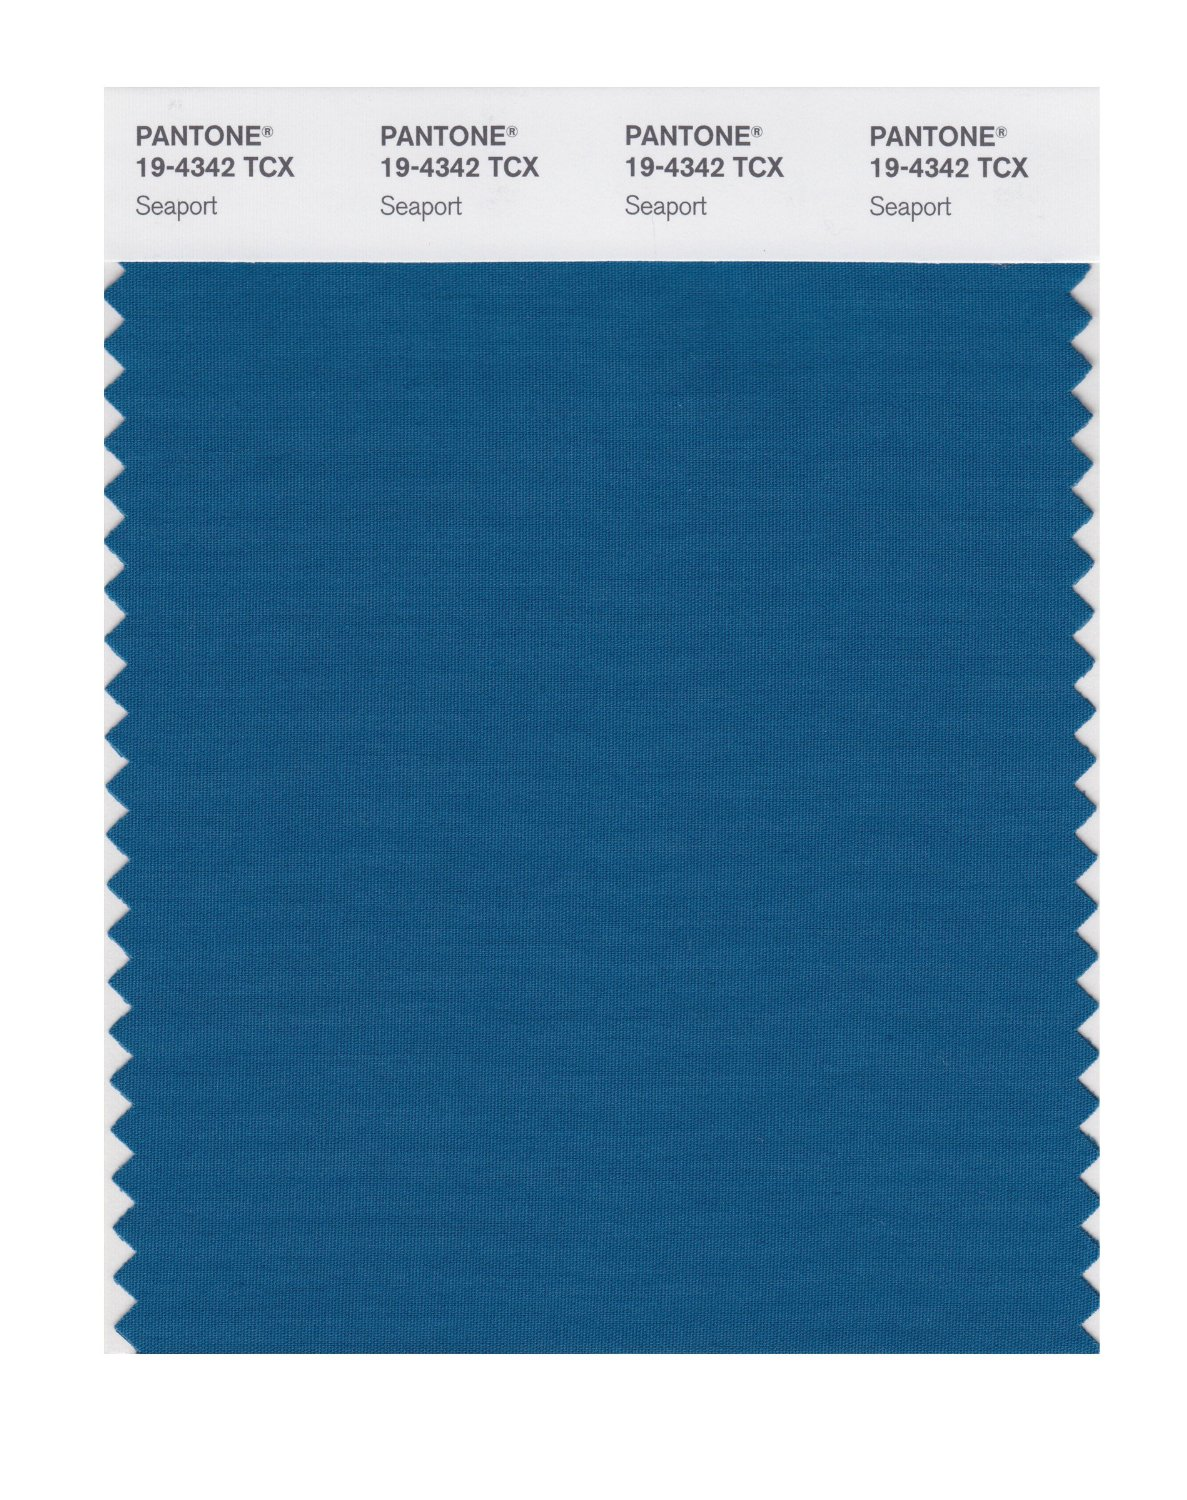 Pantone Smart Swatch 19-4342 Seaport